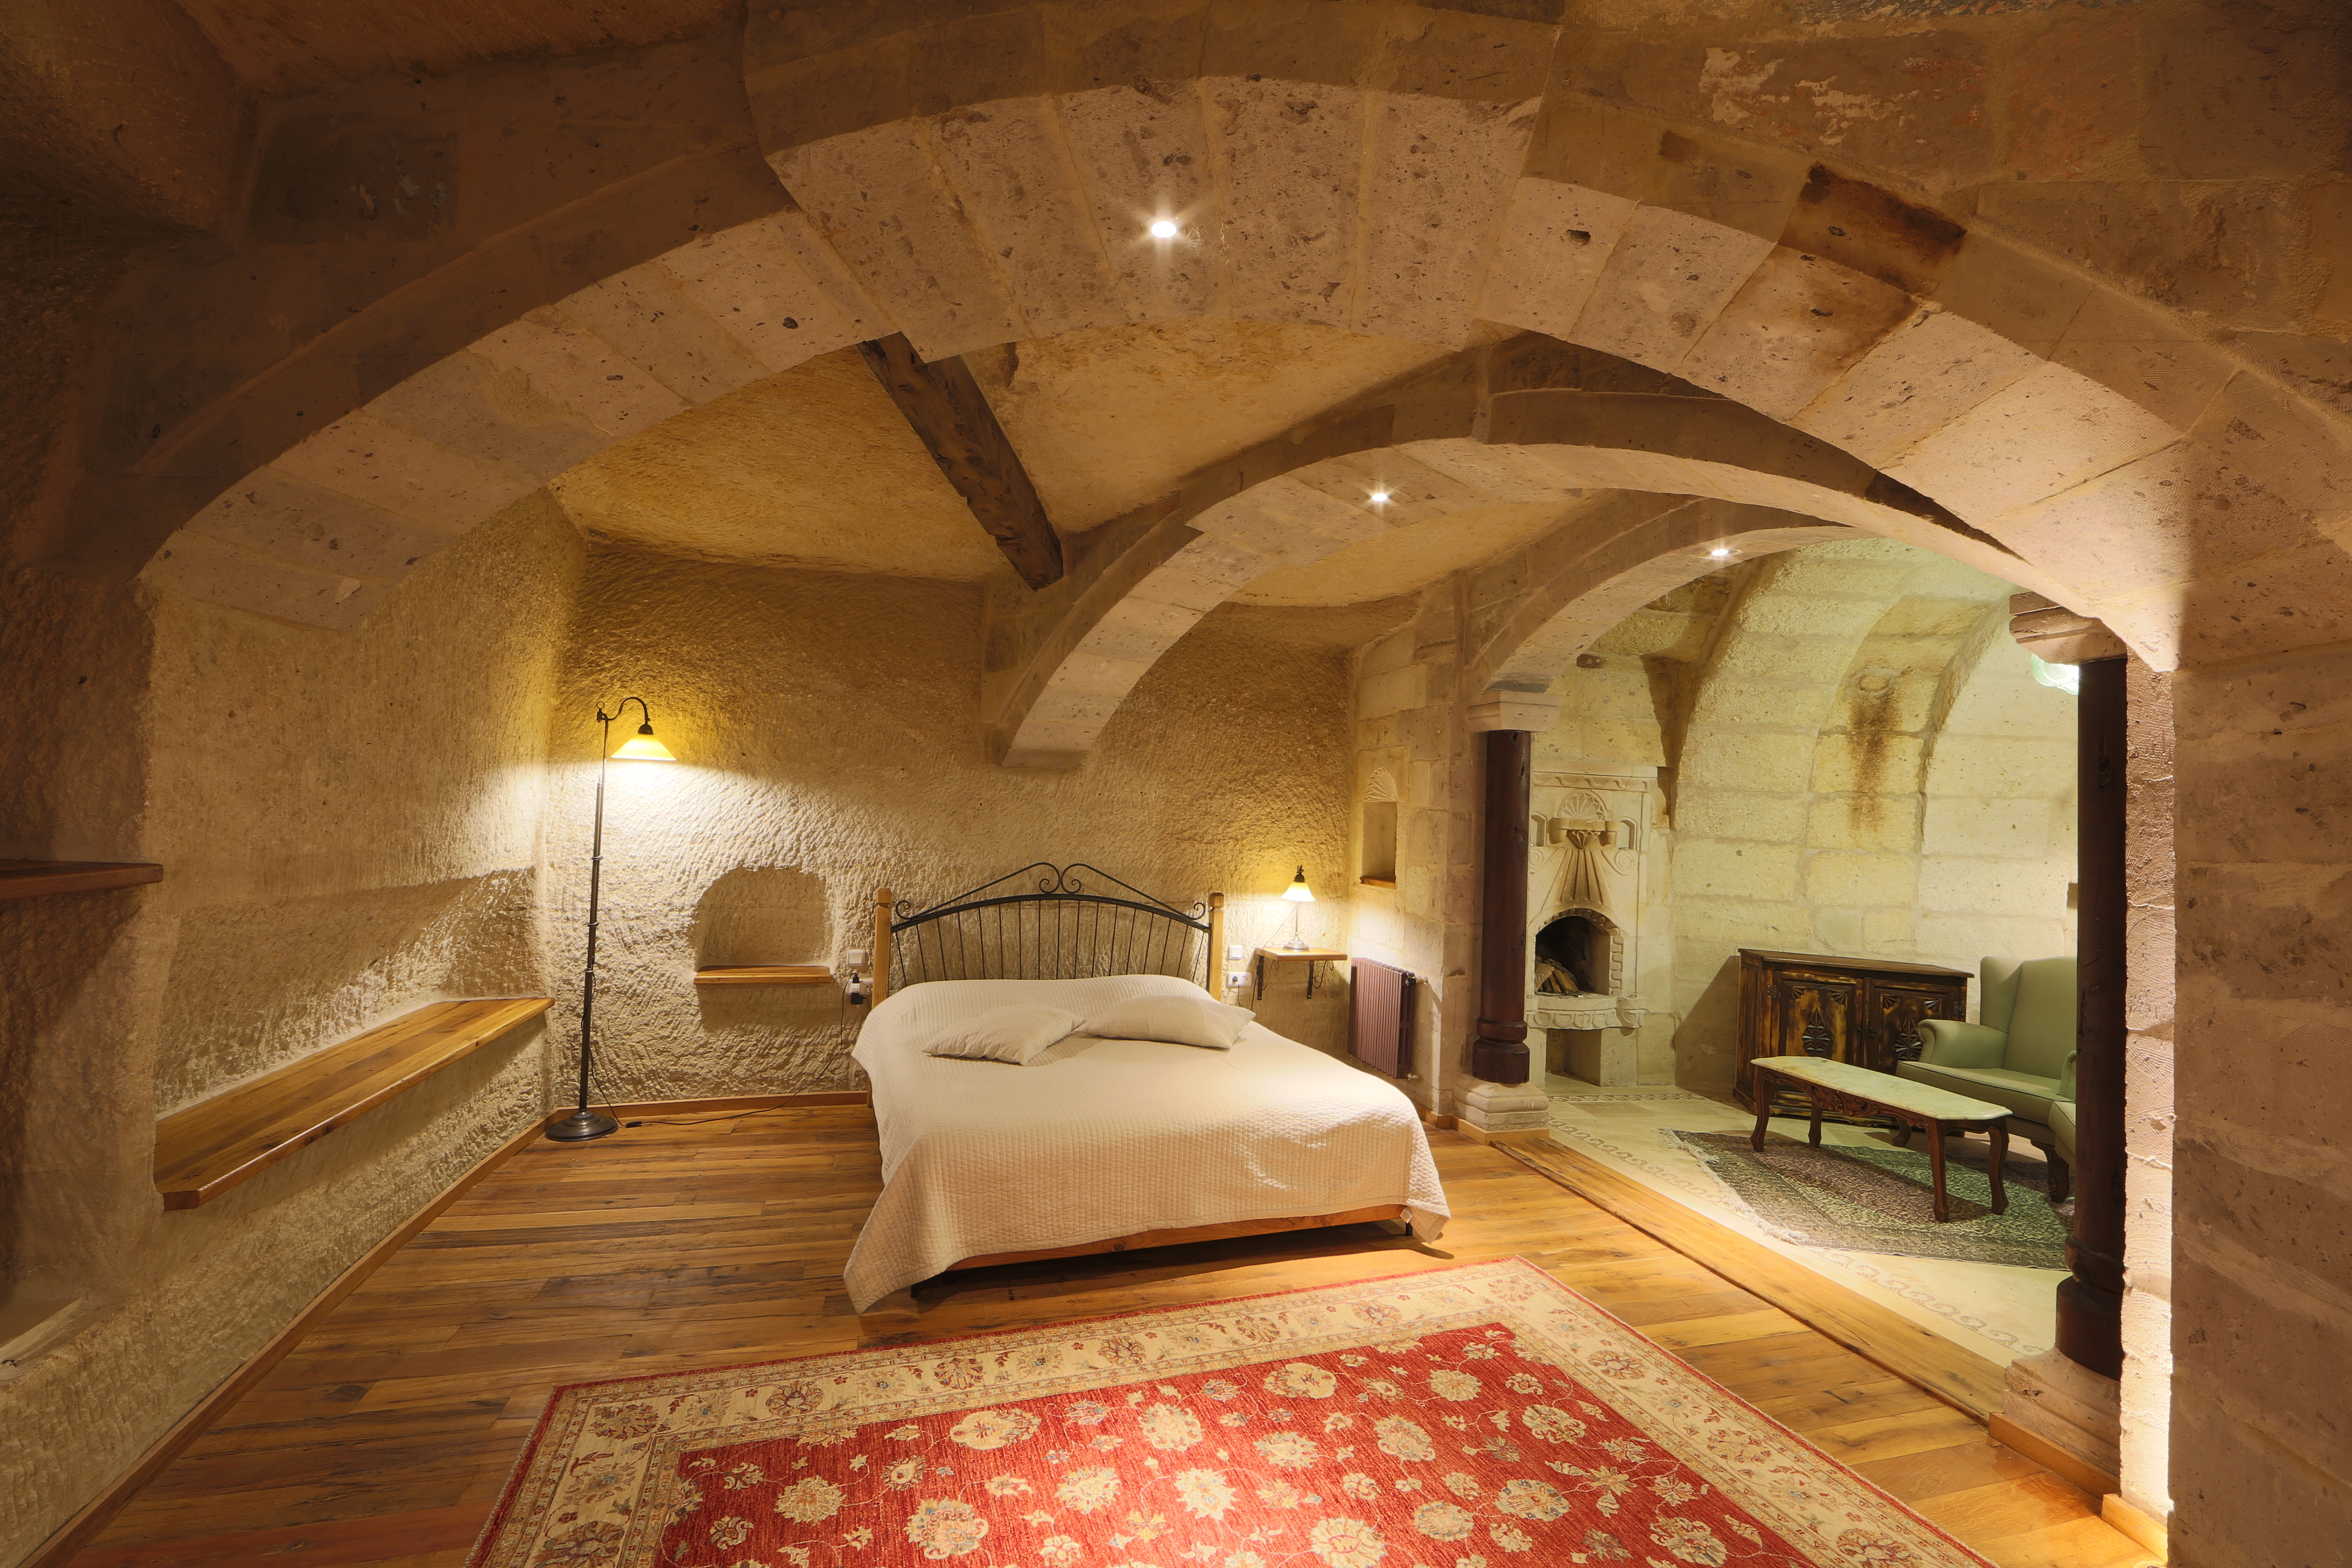 2 Nights stay at Sultan Cave Suites for only 944 Euros